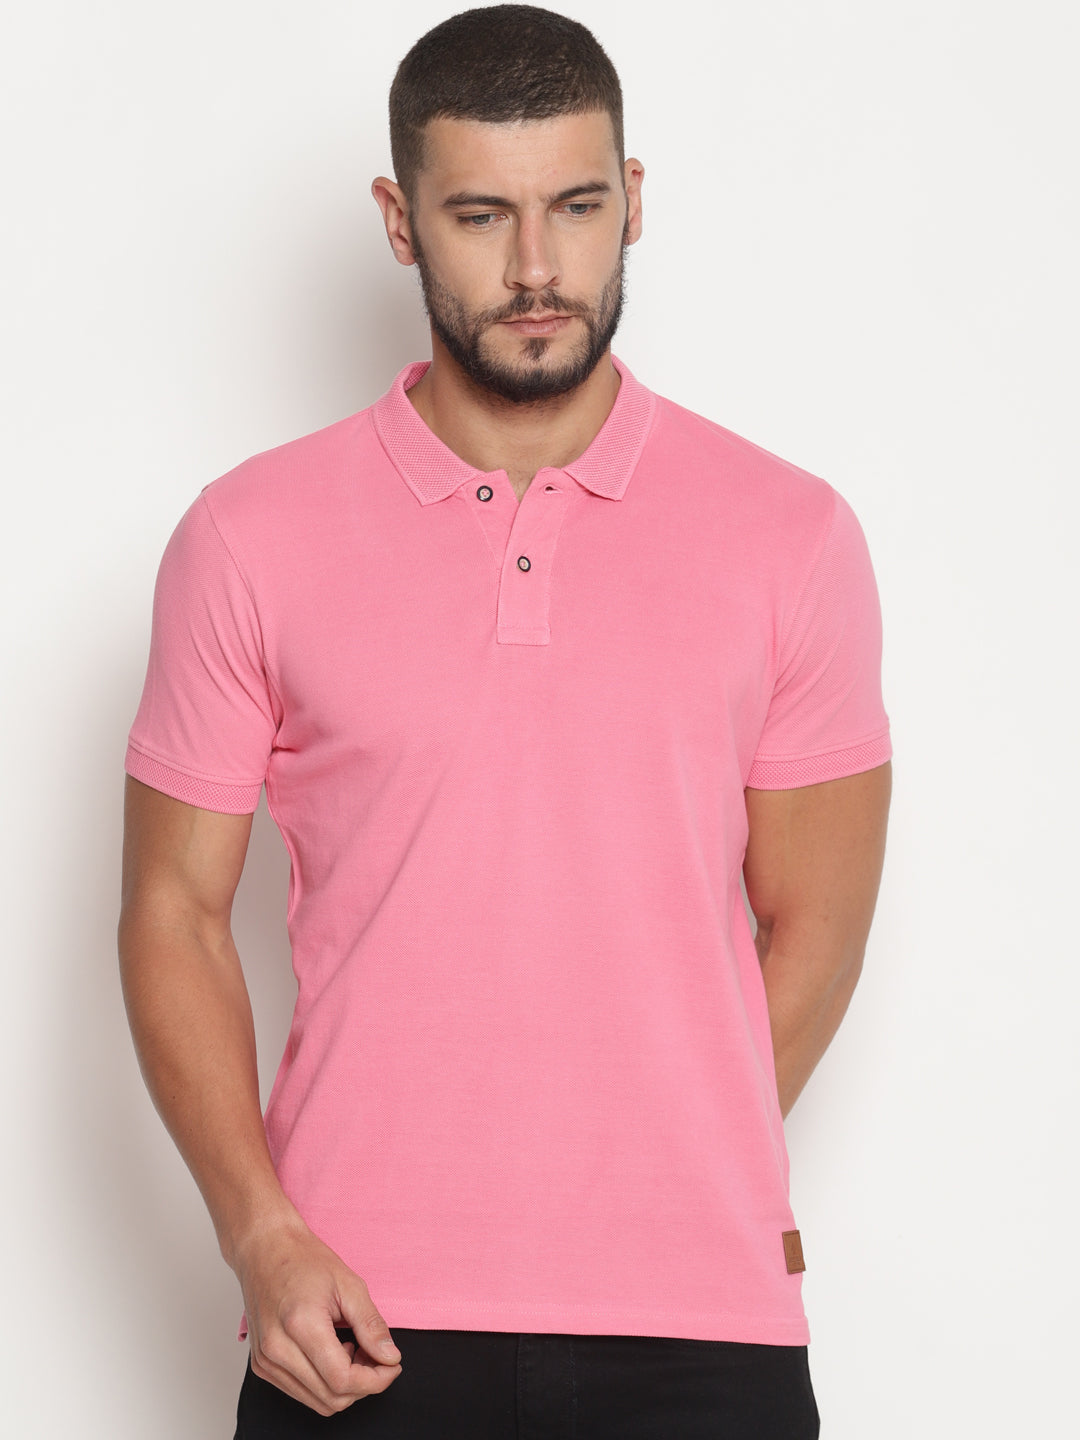 Men's Morning Glory Pastel Edition Polo T-Shirt